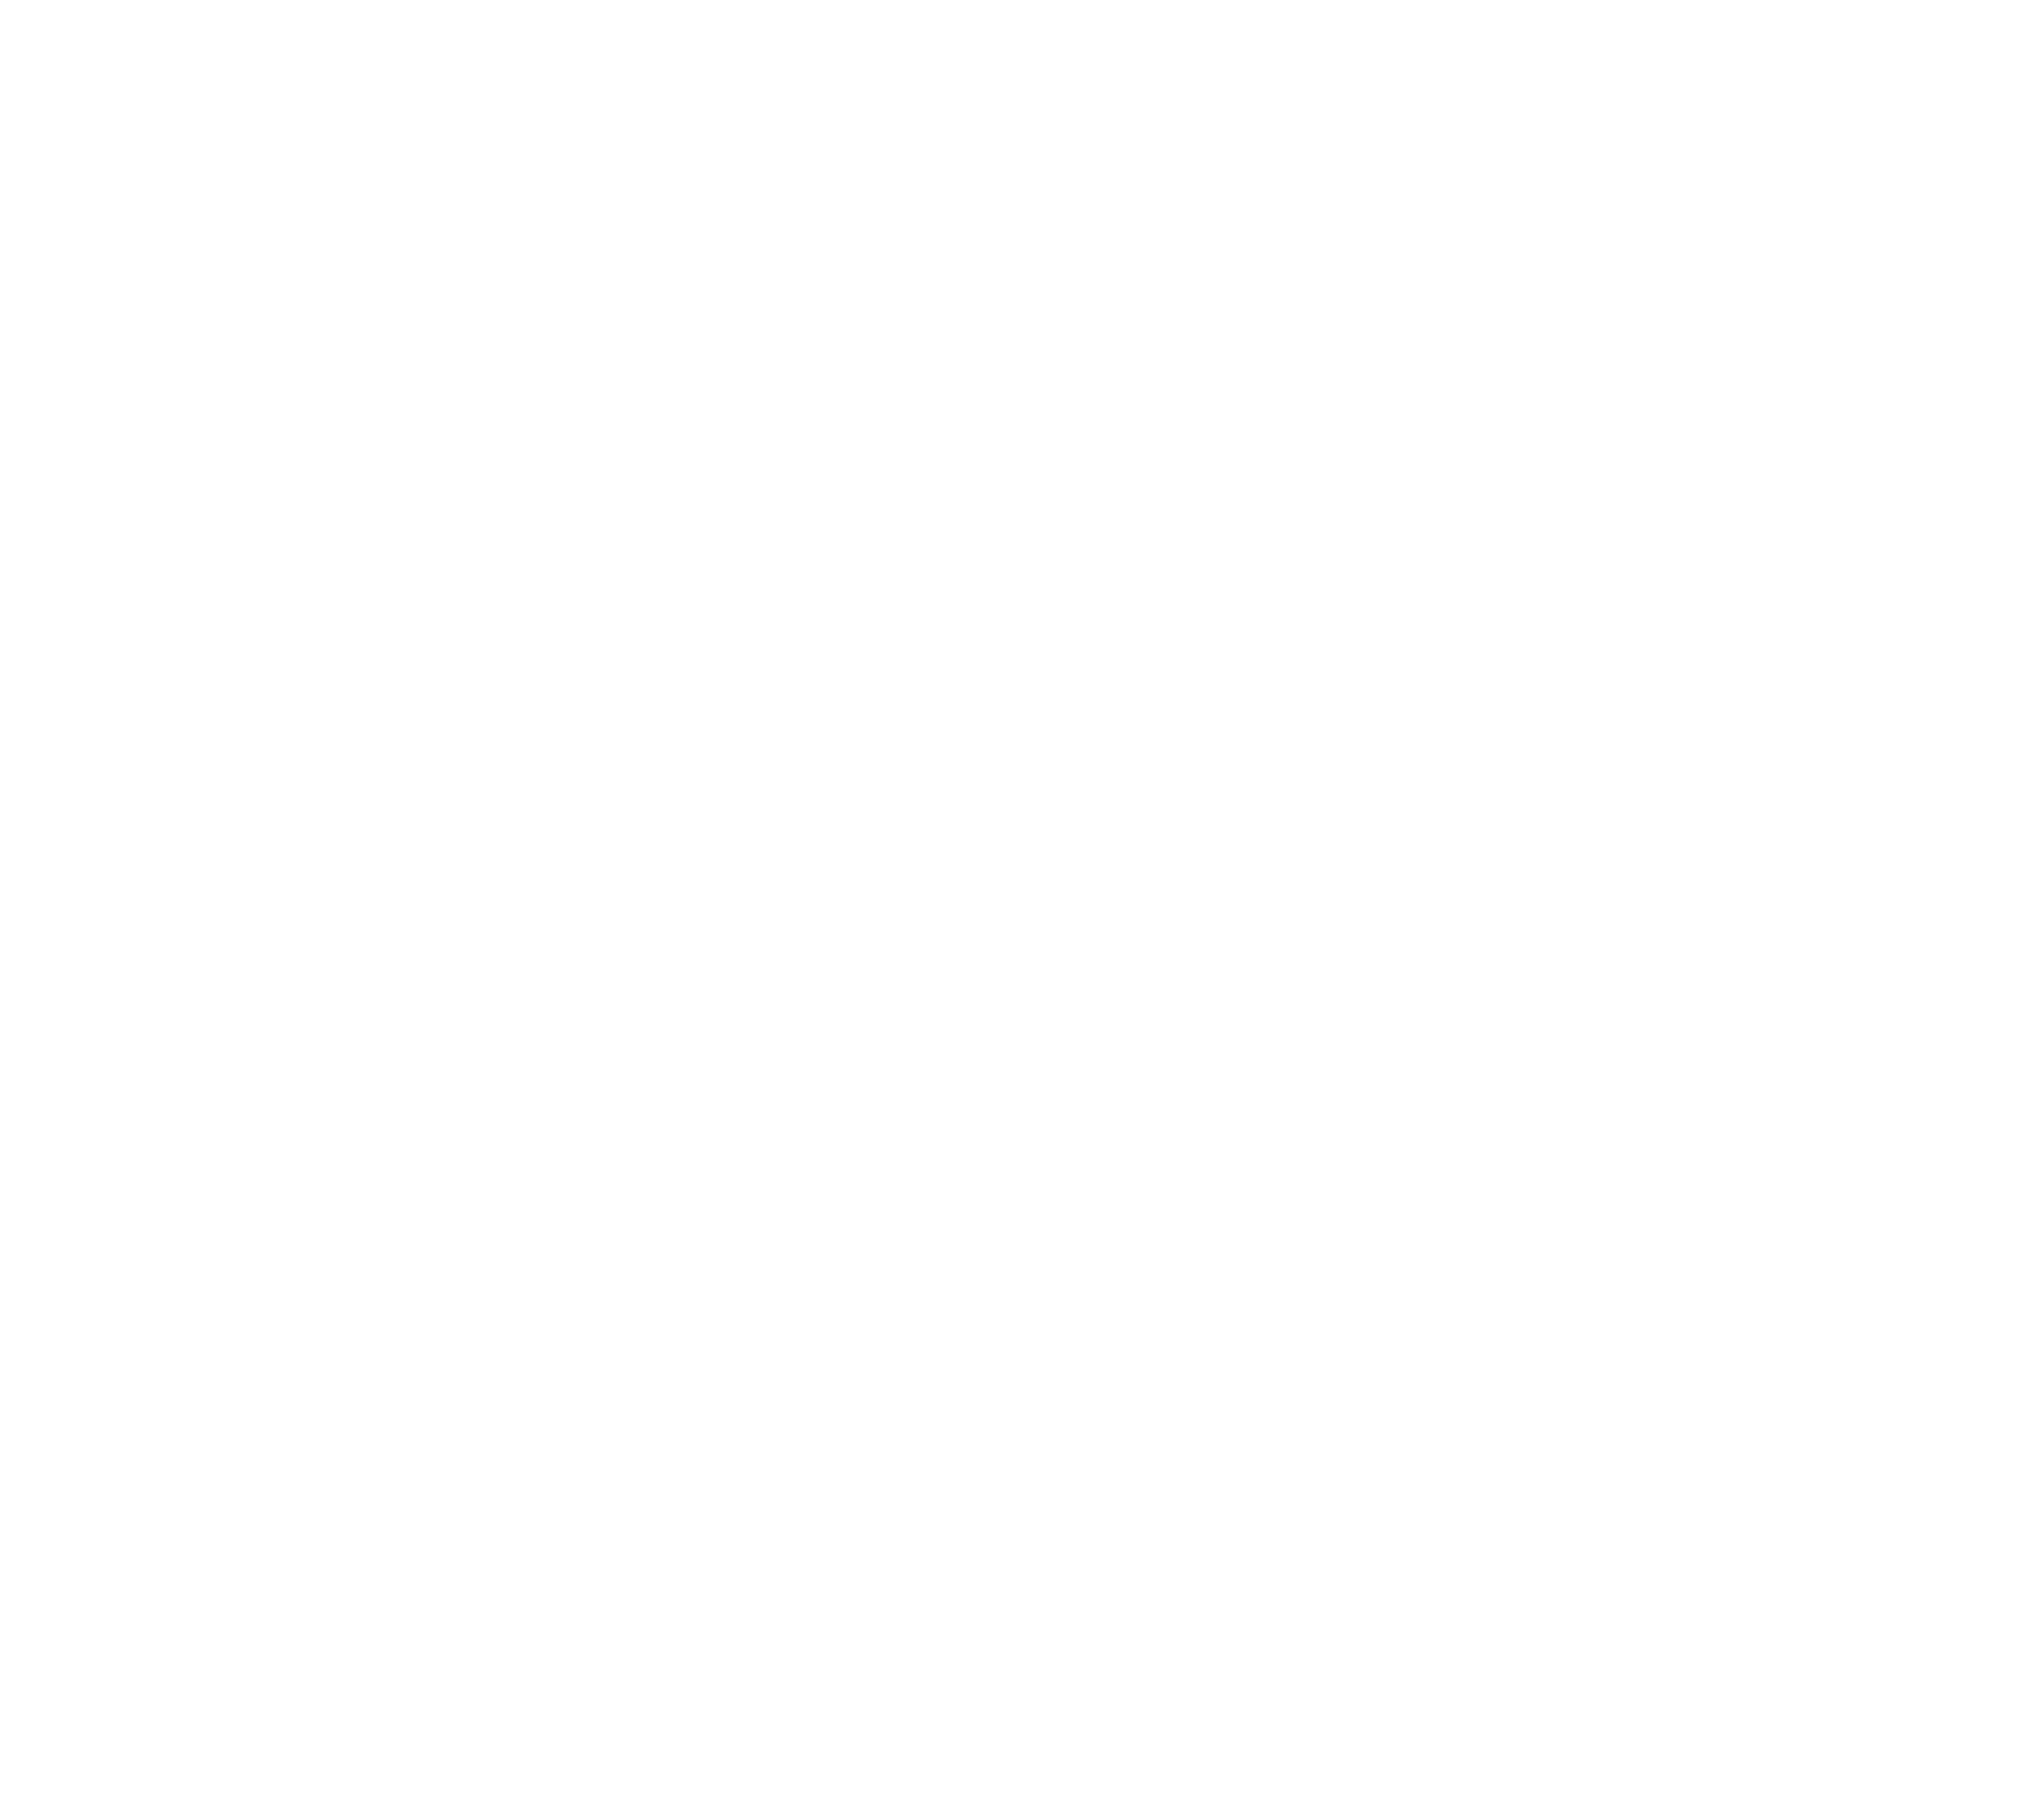 Miurama Graphic Design & Art Direction